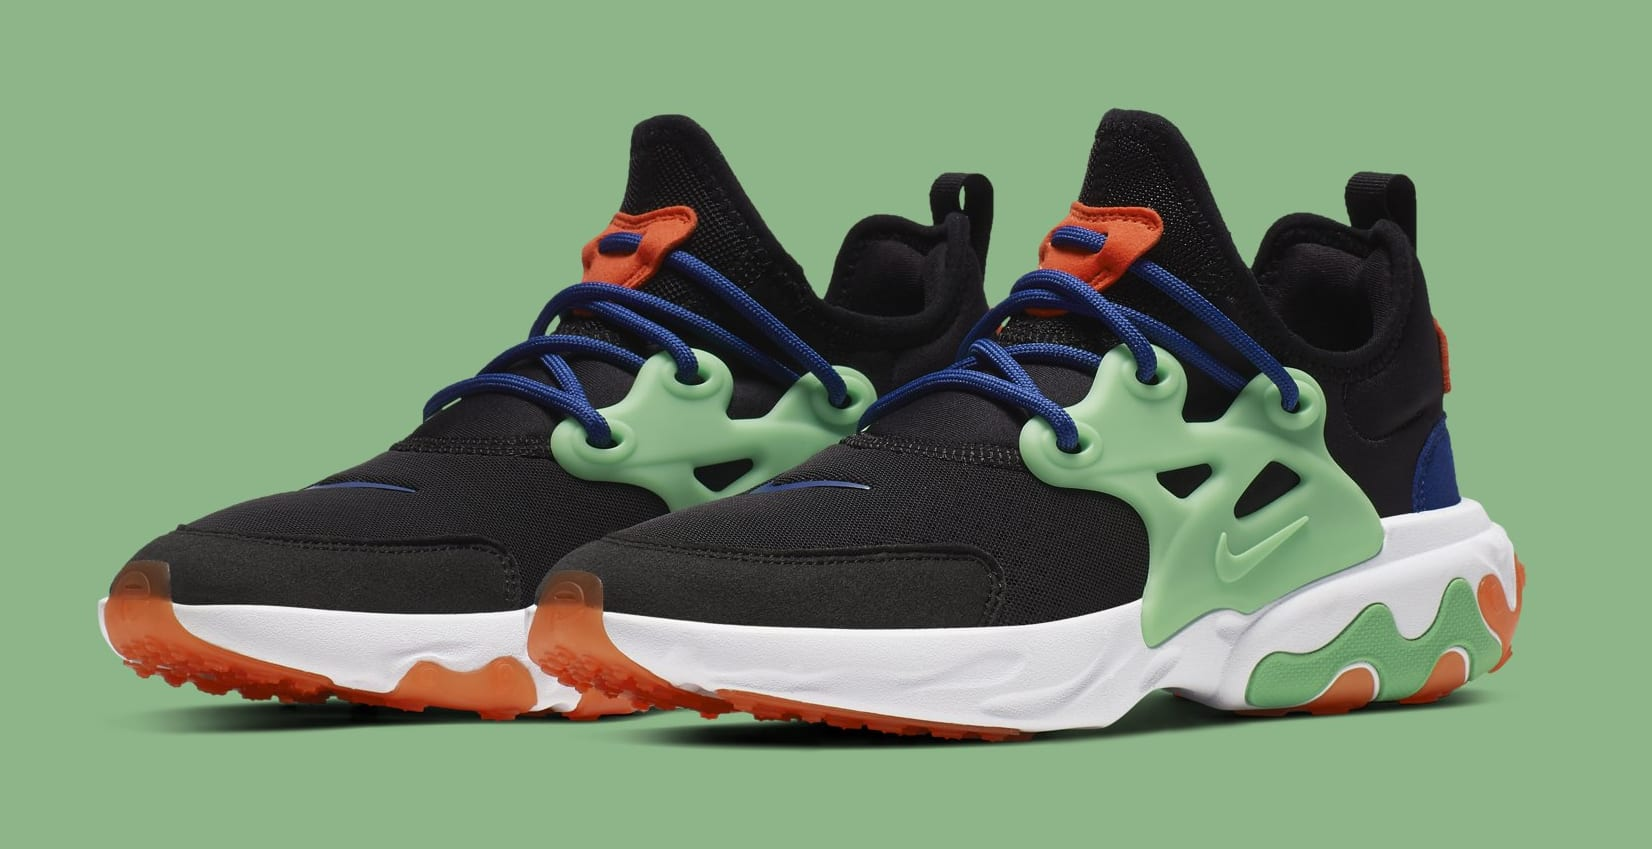 on sale b63ec 2b8e3 Nike Presto React BQ4002-006 (Pair)